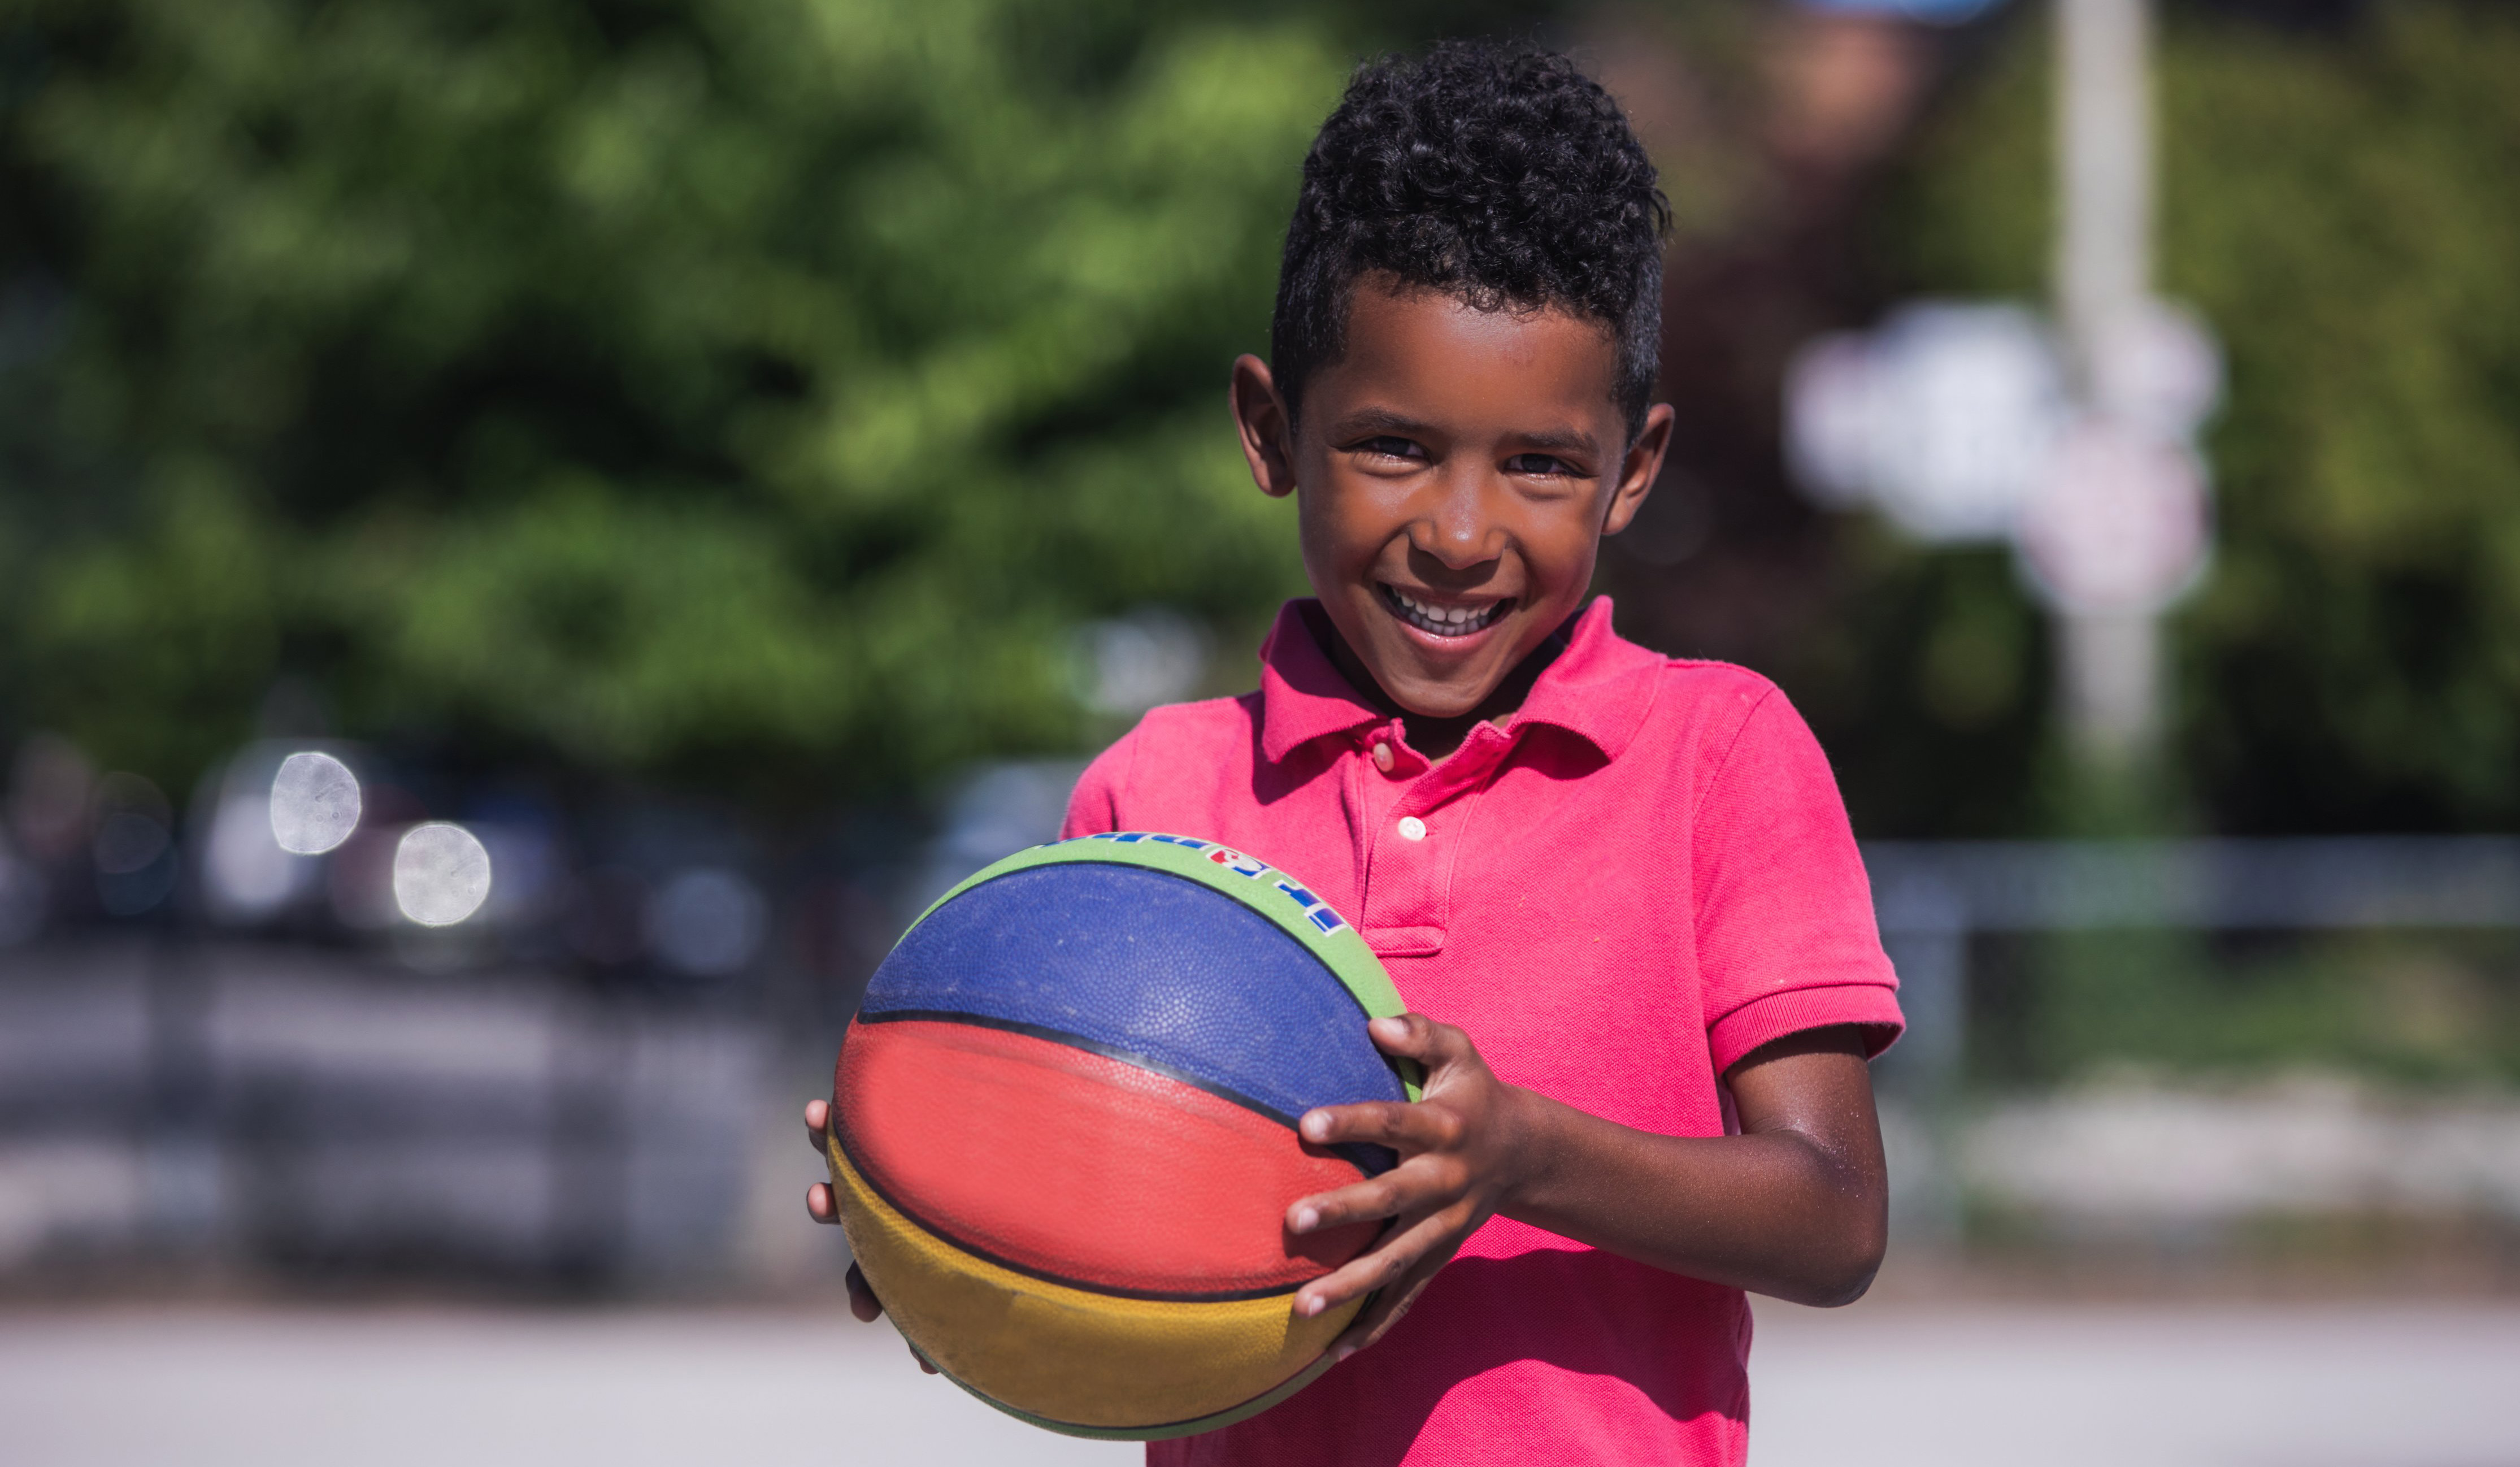 cropped_smiling-boy-with-basketball